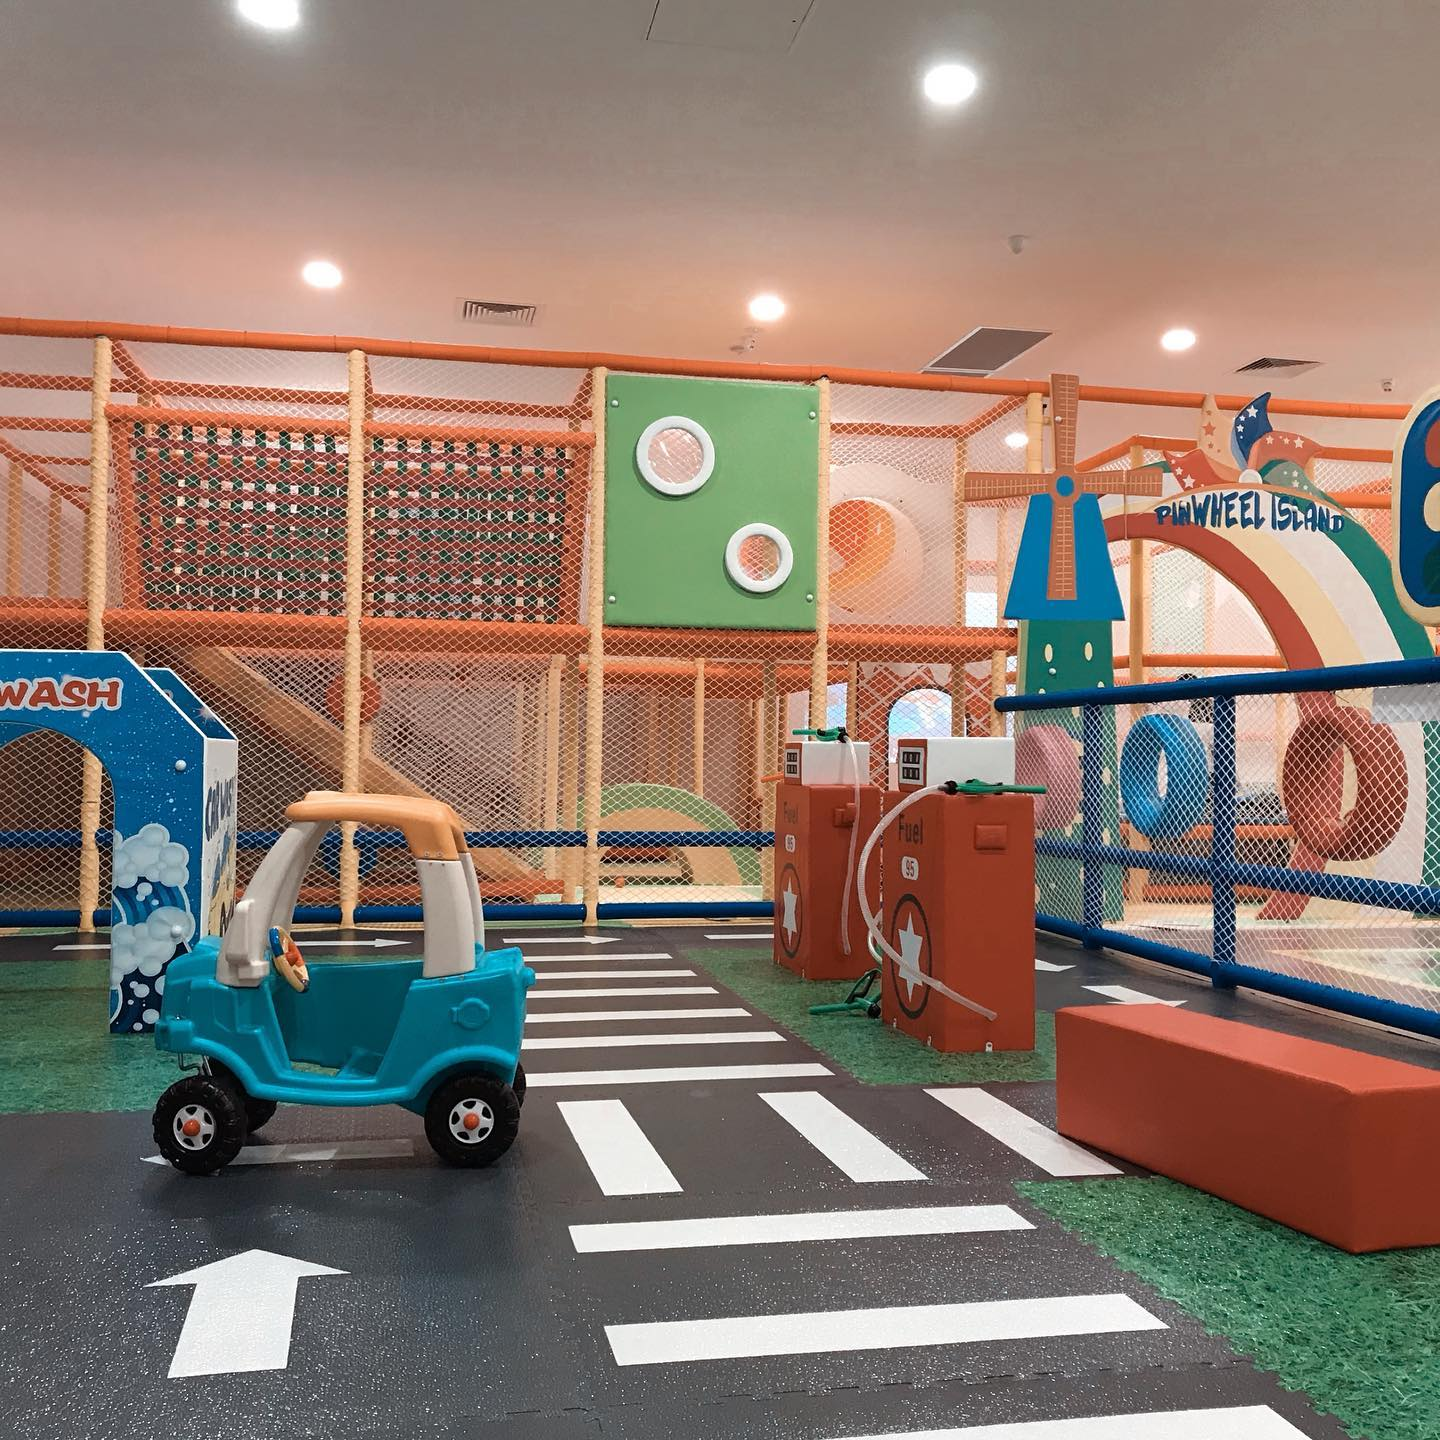 Pinwheel Island Kids Cafe